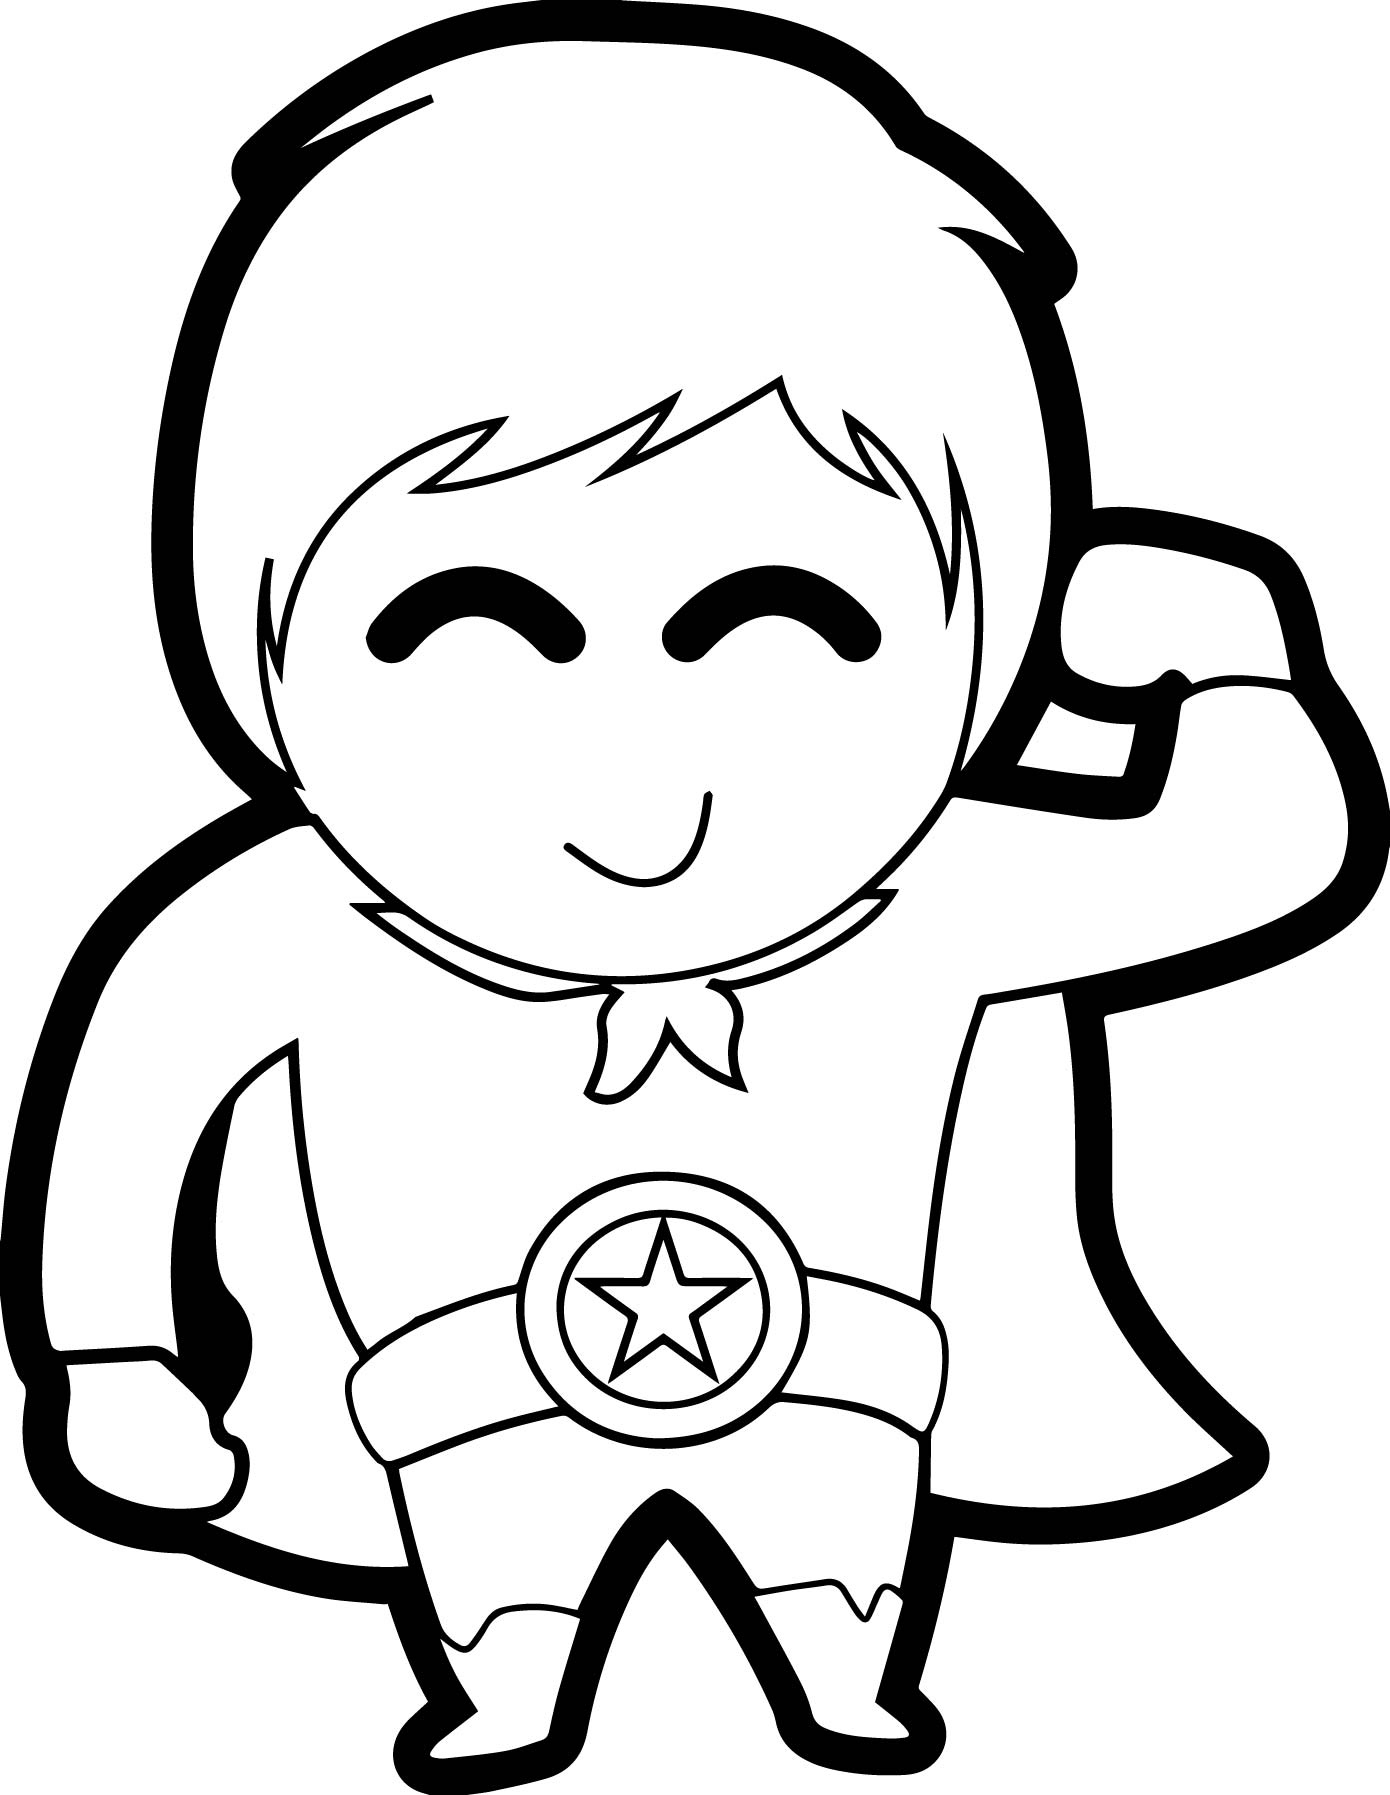 Cute Boy Heroes Coloring Page